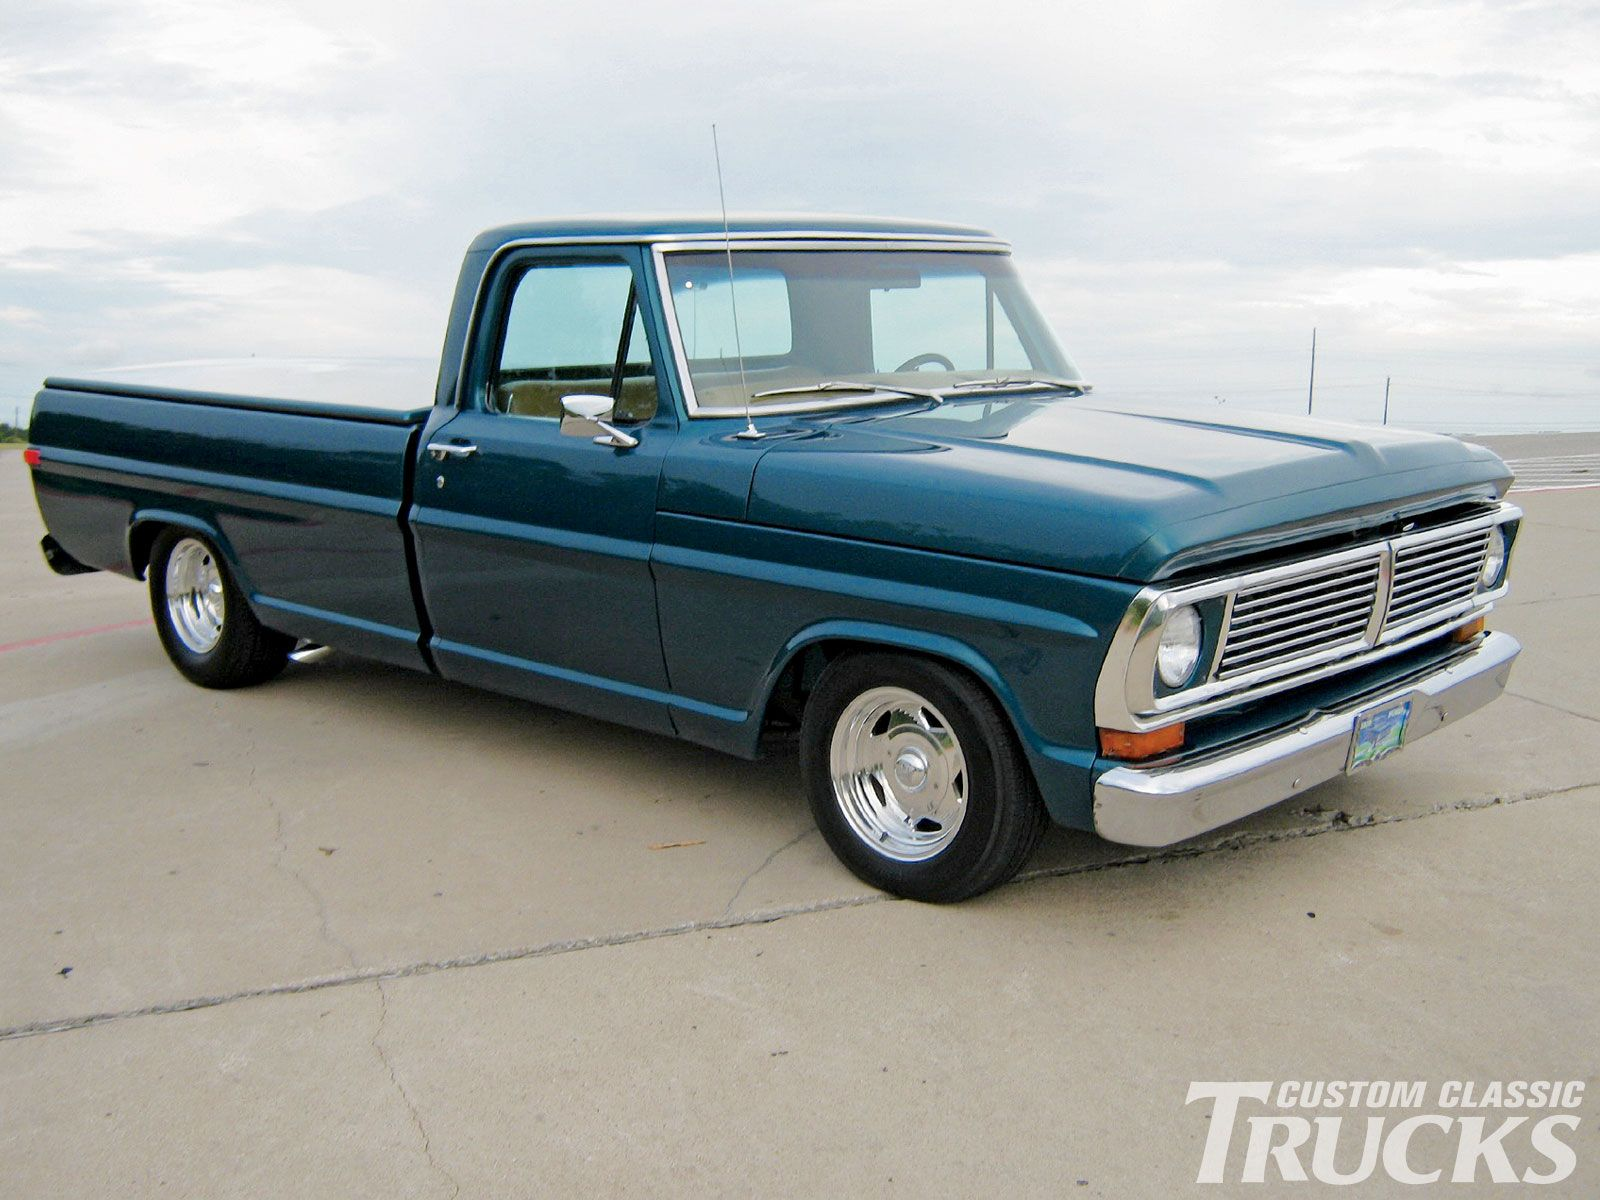 1956 ford f100 big window section for sale autos post for 1956 ford f100 big window truck for sale